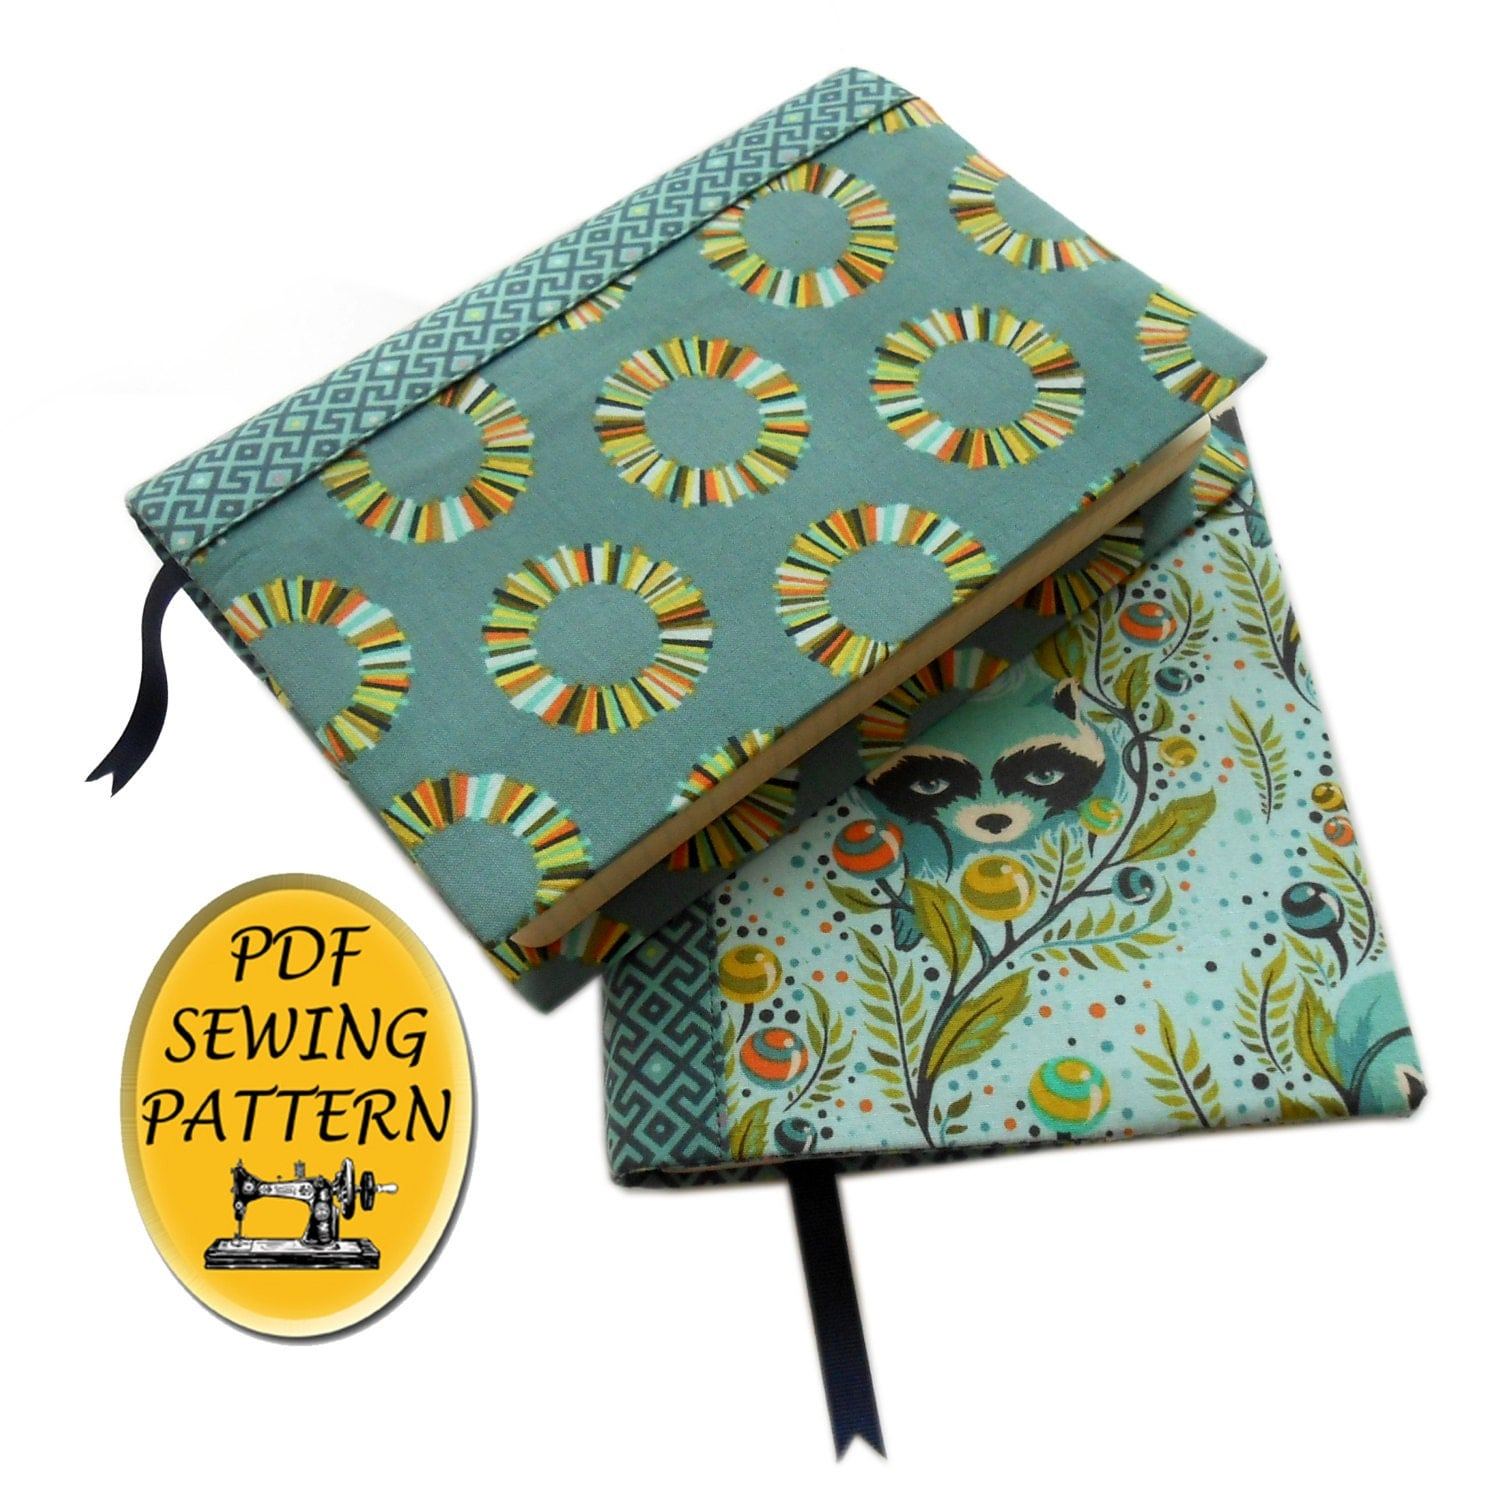 Sewing Book Cover : Bible cover pattern a notebook holder sewing